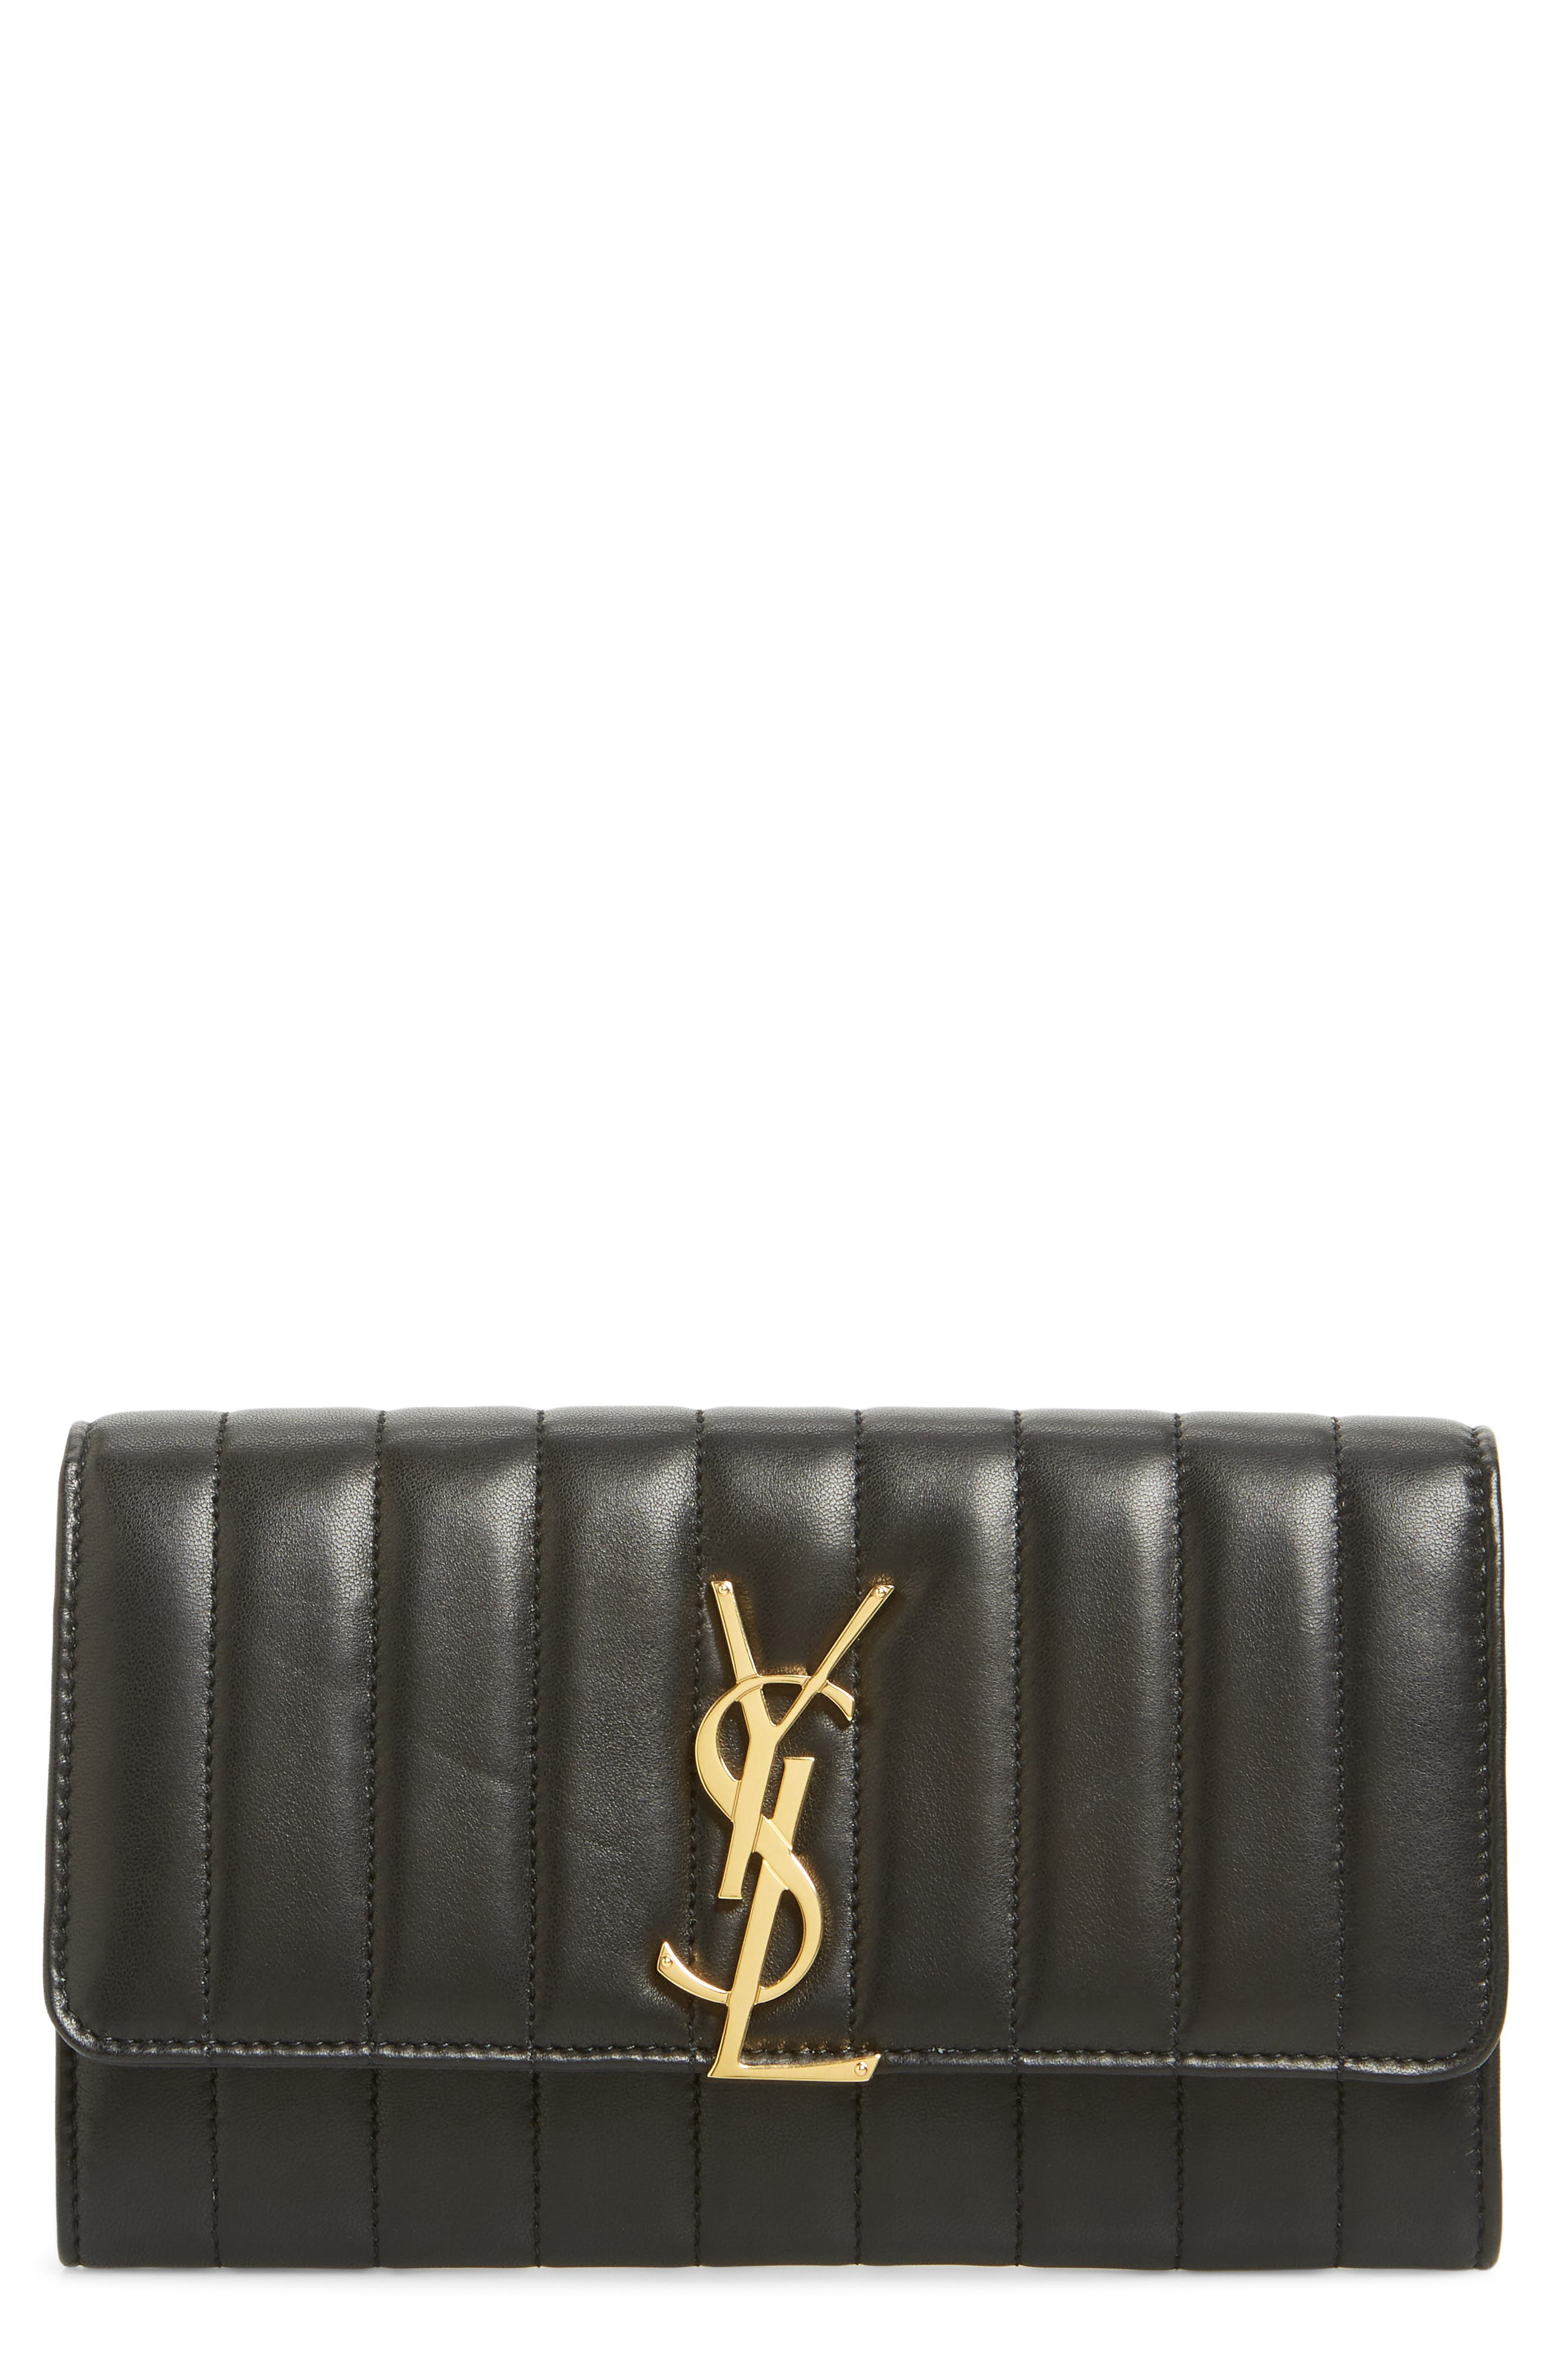 Vicky Large Continental Wallet,                         Main,                         color, NOIR